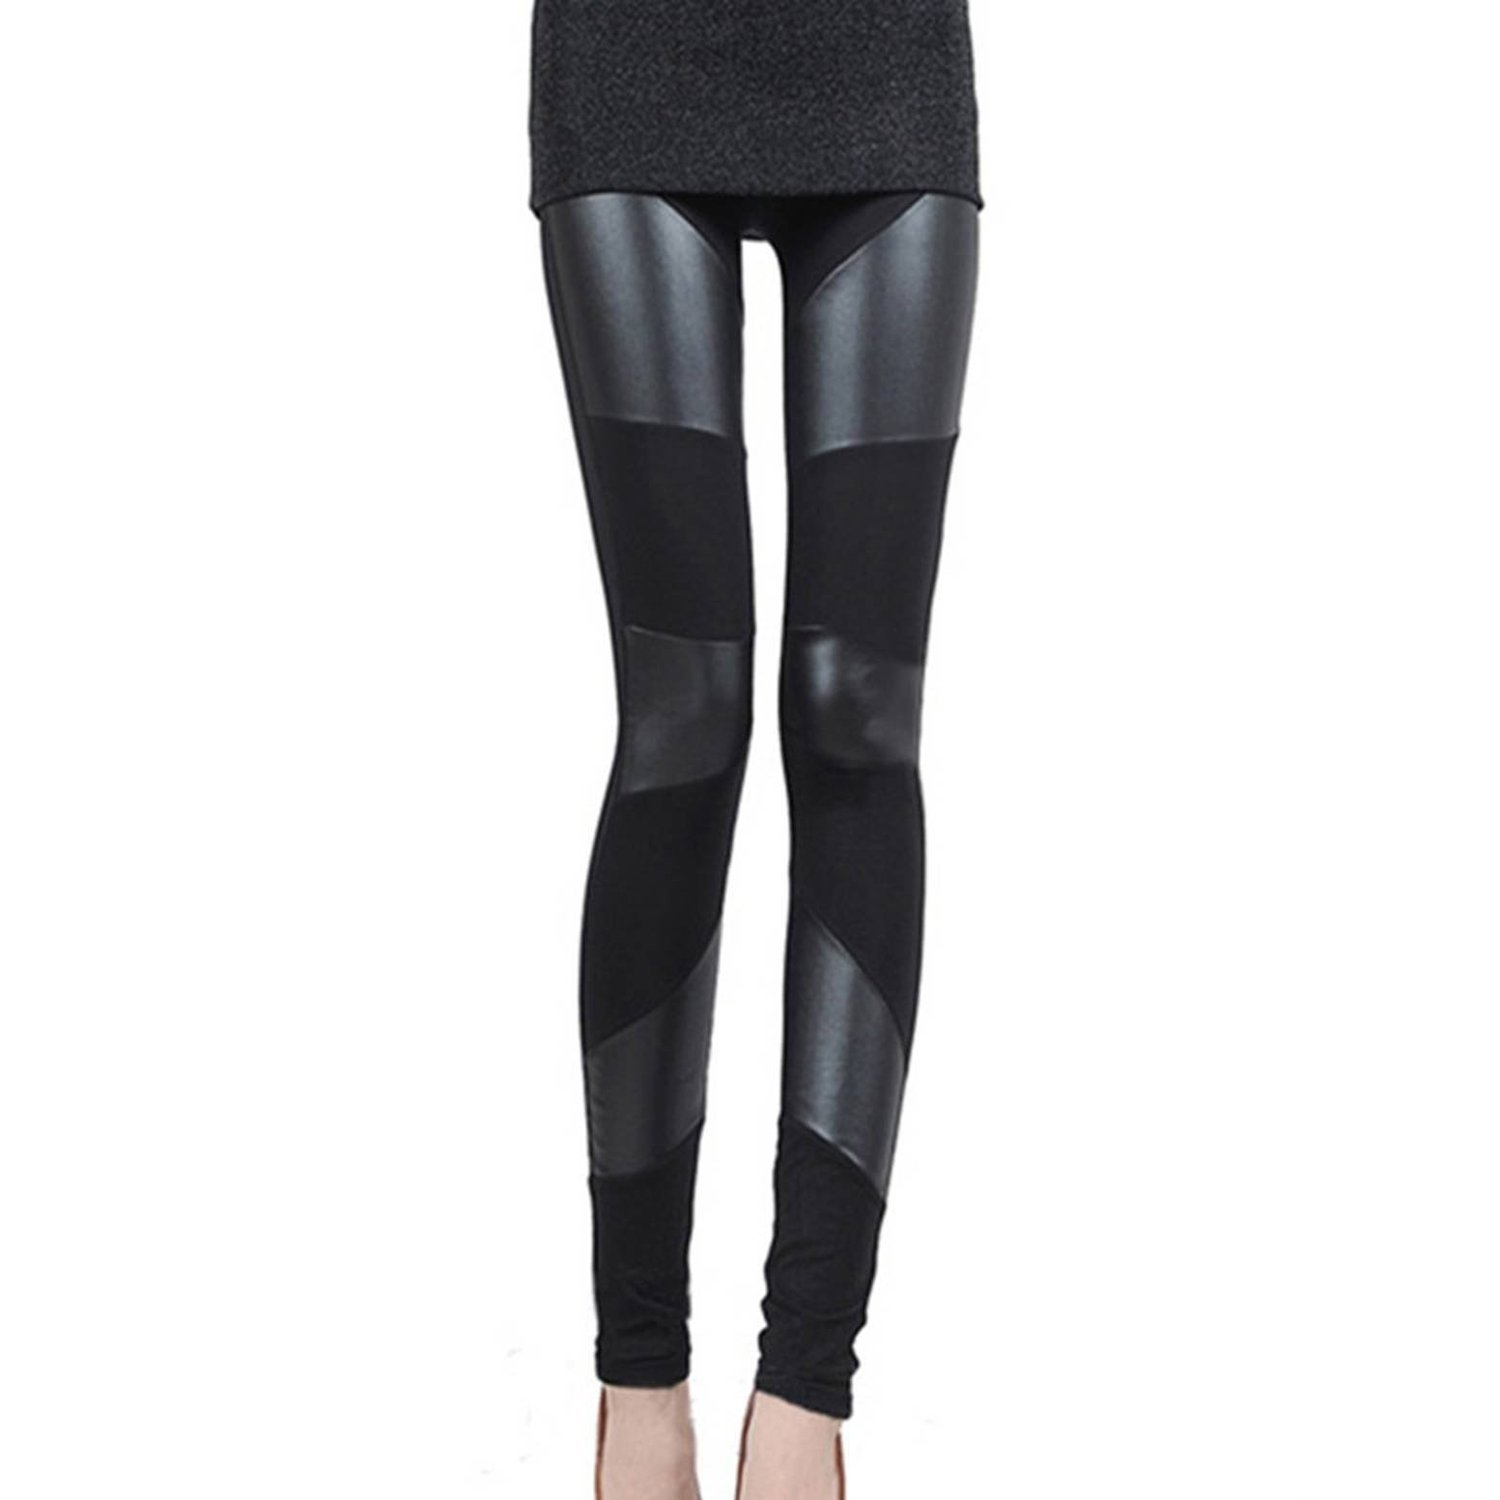 12b36b7b9ab47e Get Quotations · Women Leather Legging - TOOGOO (R) The First Three Ladies  Paragraphs Leather Seams Leggings